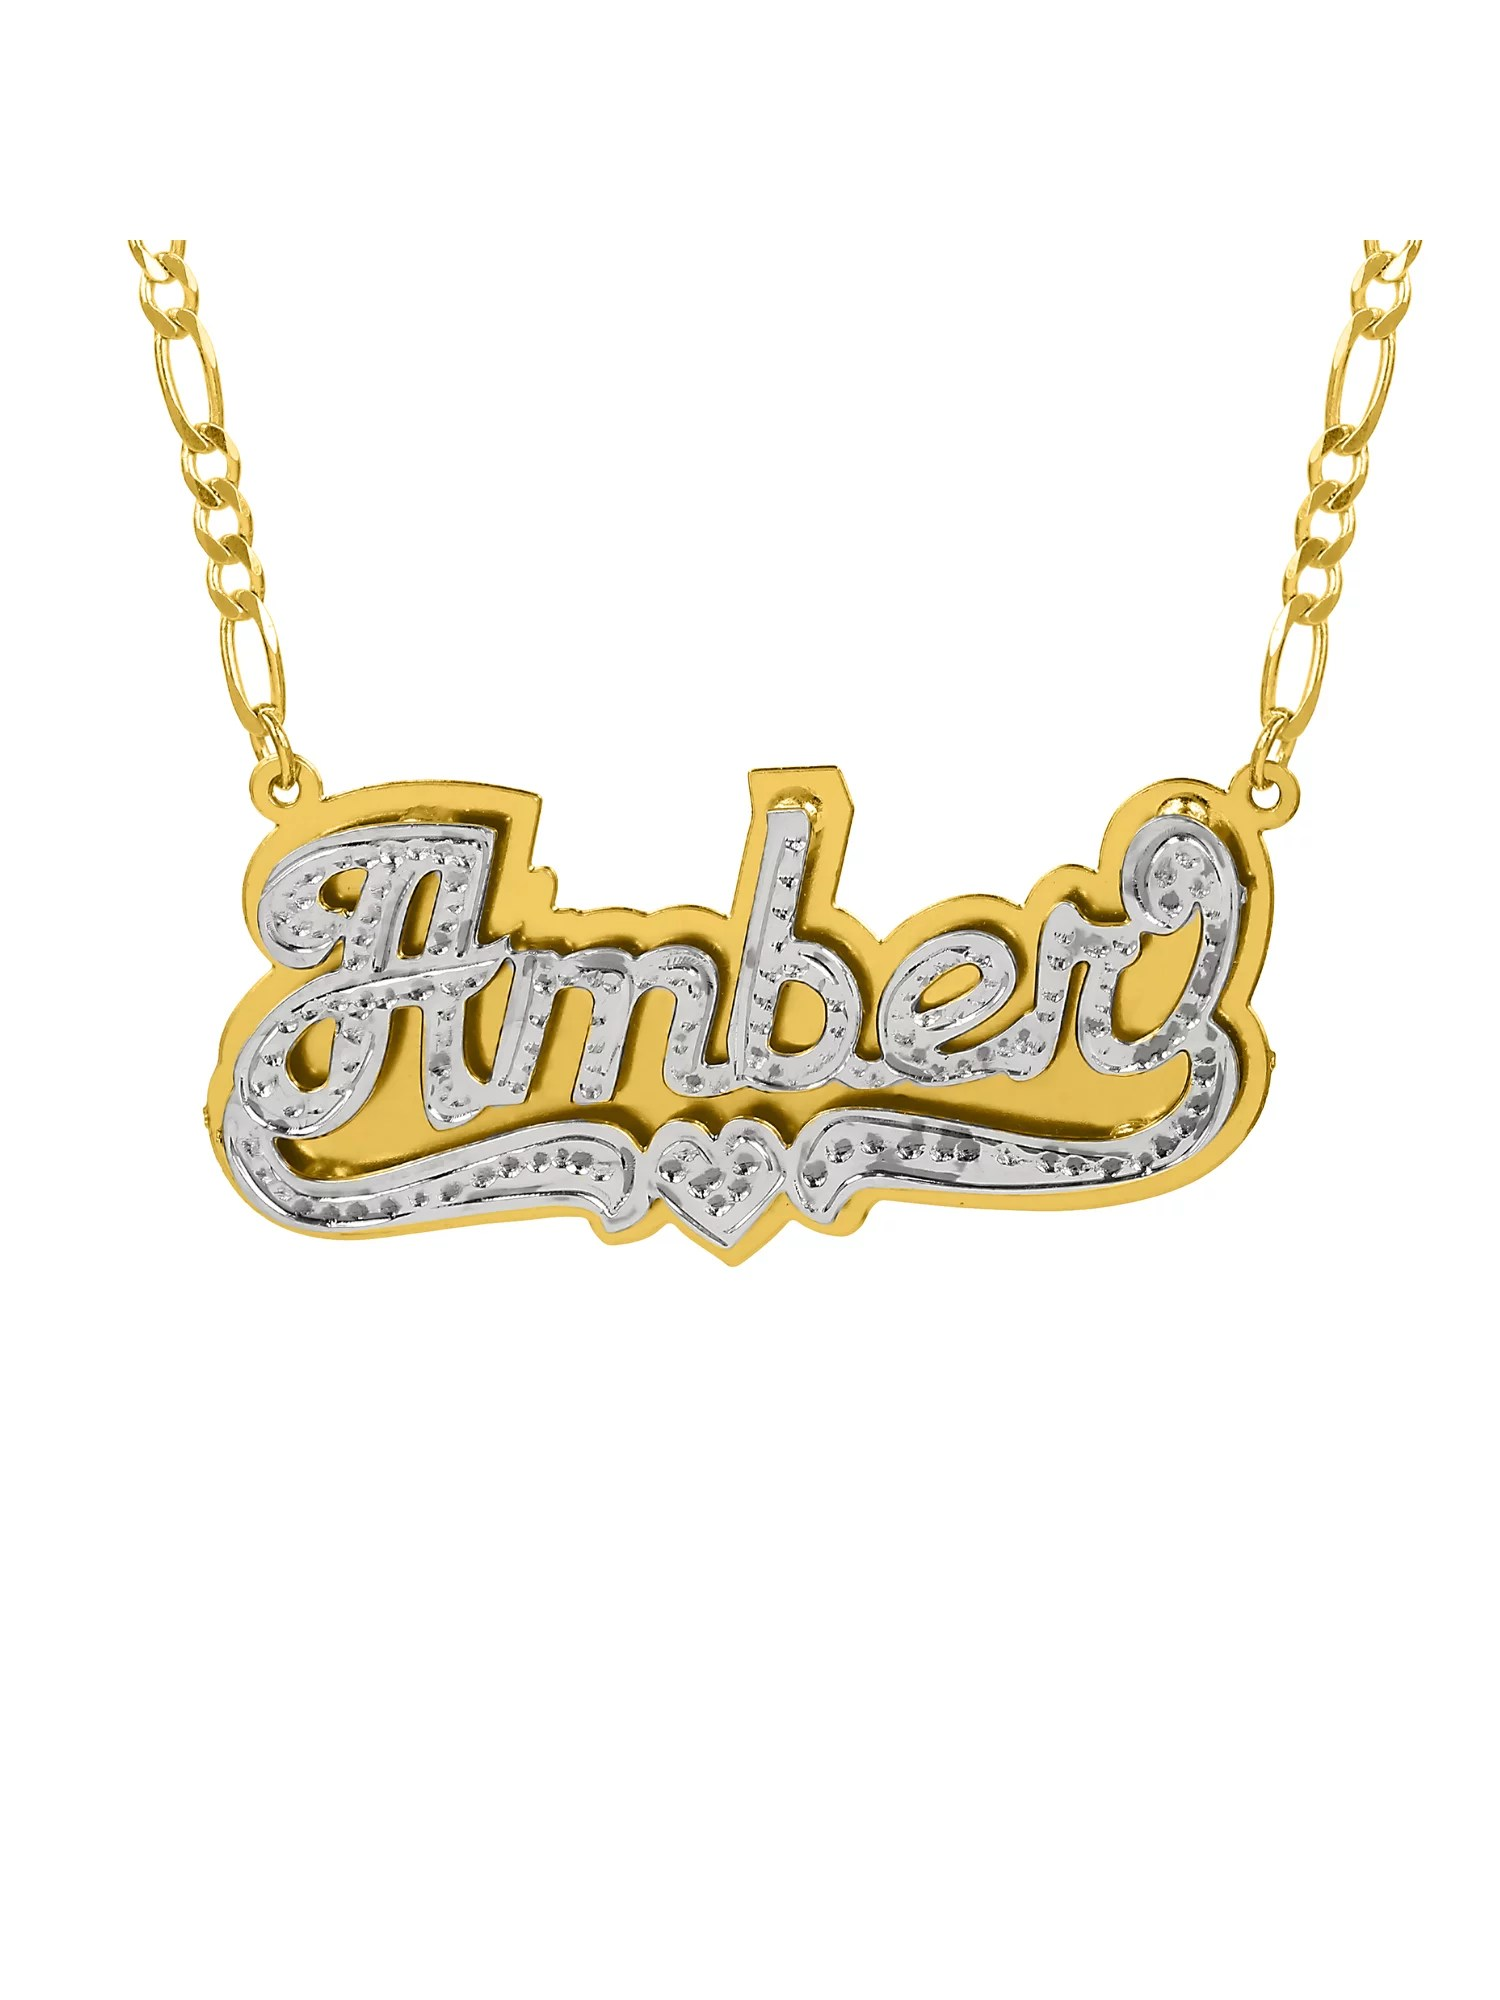 Personalized Sterling Silver or Gold Plated Double Nameplate Necklace with Beading and Rhodium, 18″ Silver Plated Figaro Chain